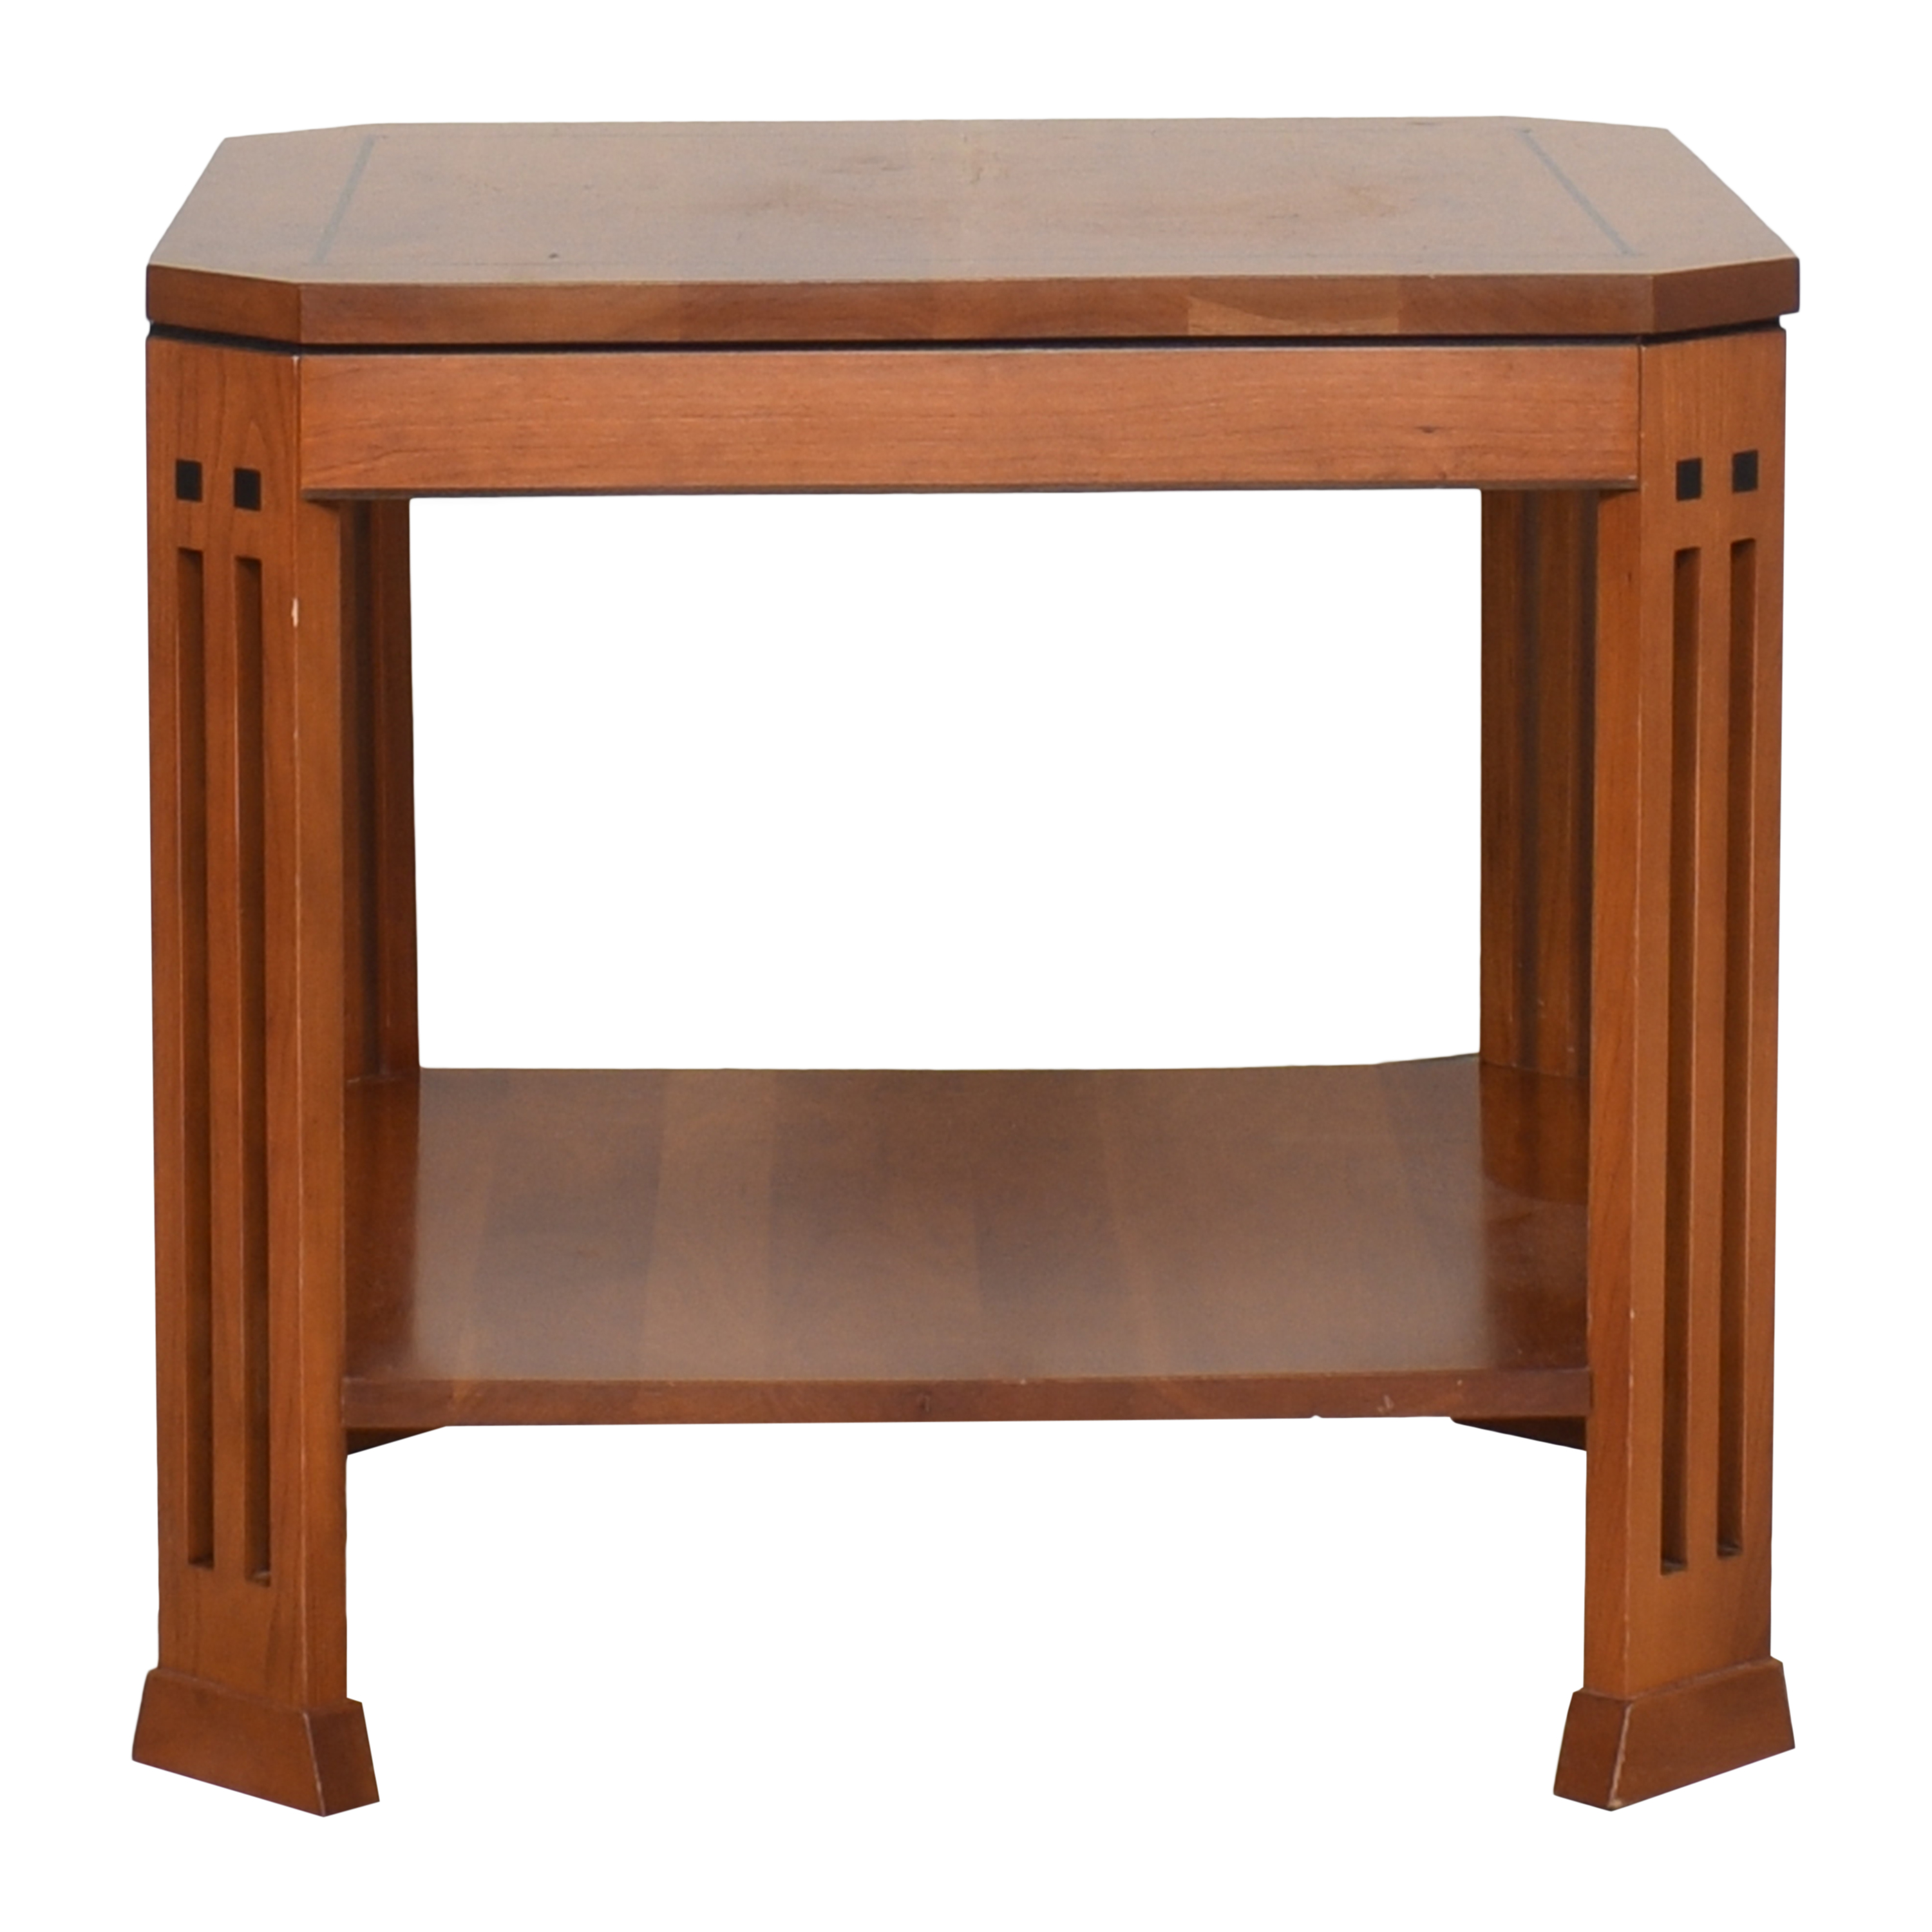 Stickley Furniture Stickley Furniture 21st Century Square Lamp Table Tables